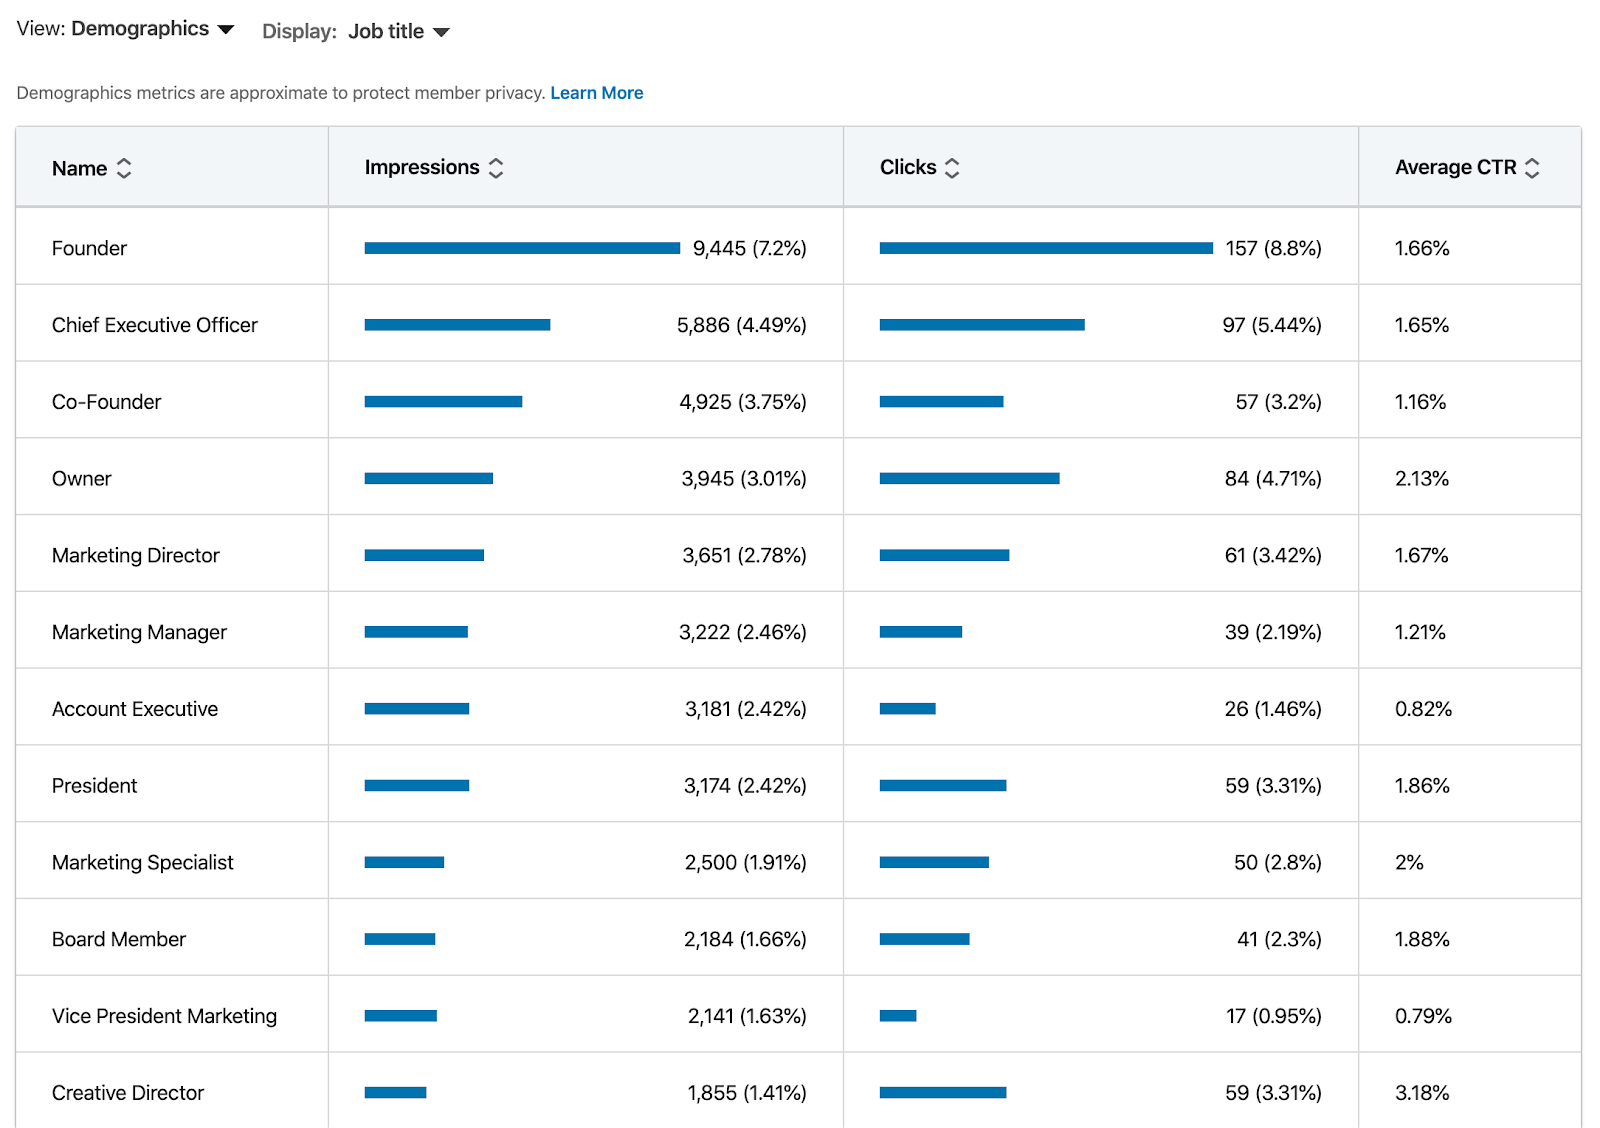 LinkedIn report breaking down job title, impressions, clicks, and CTR